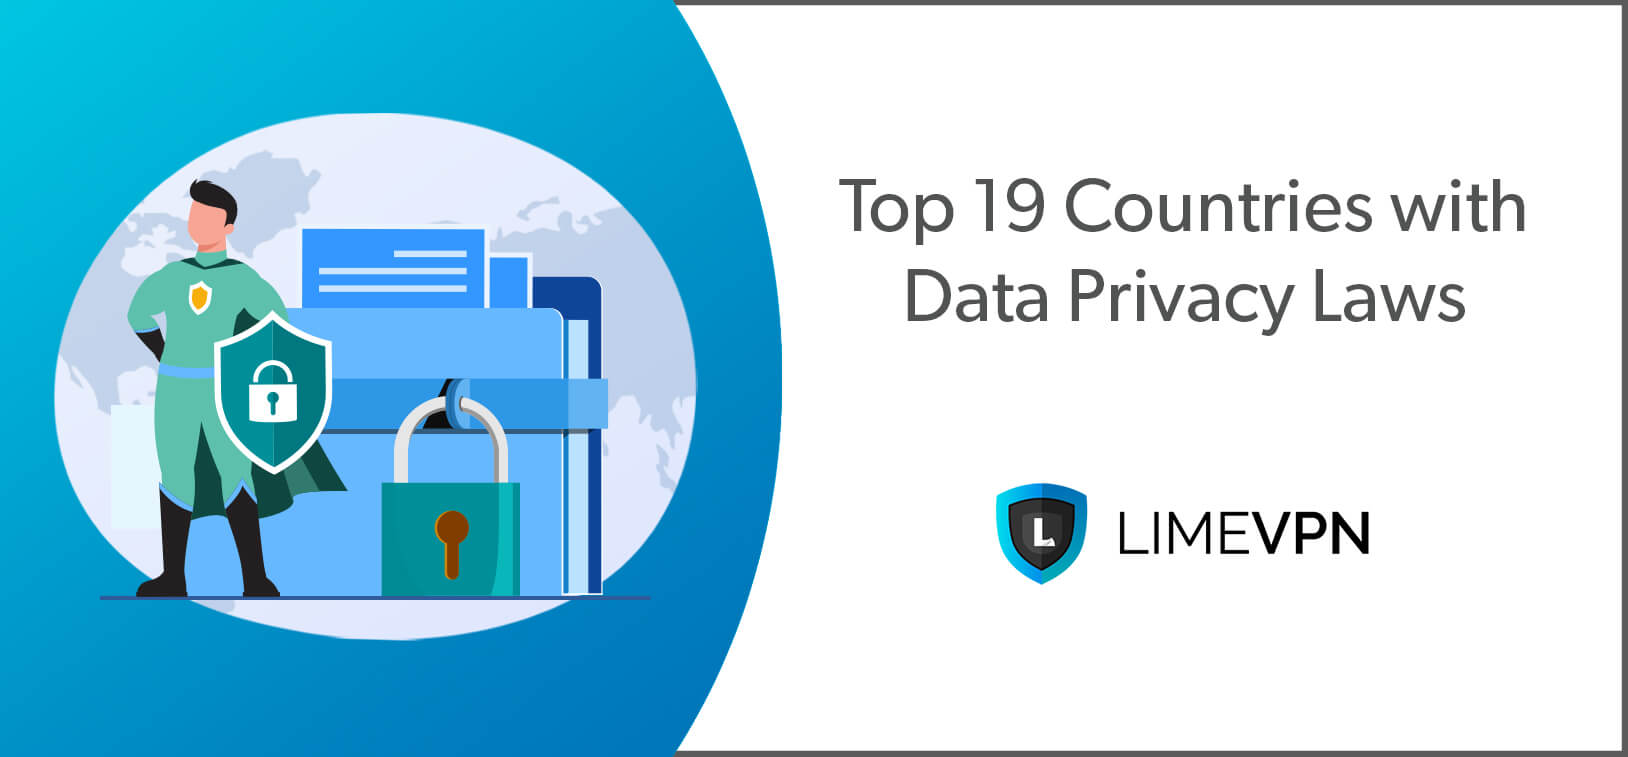 Top 19 Countries with Data Privacy Laws